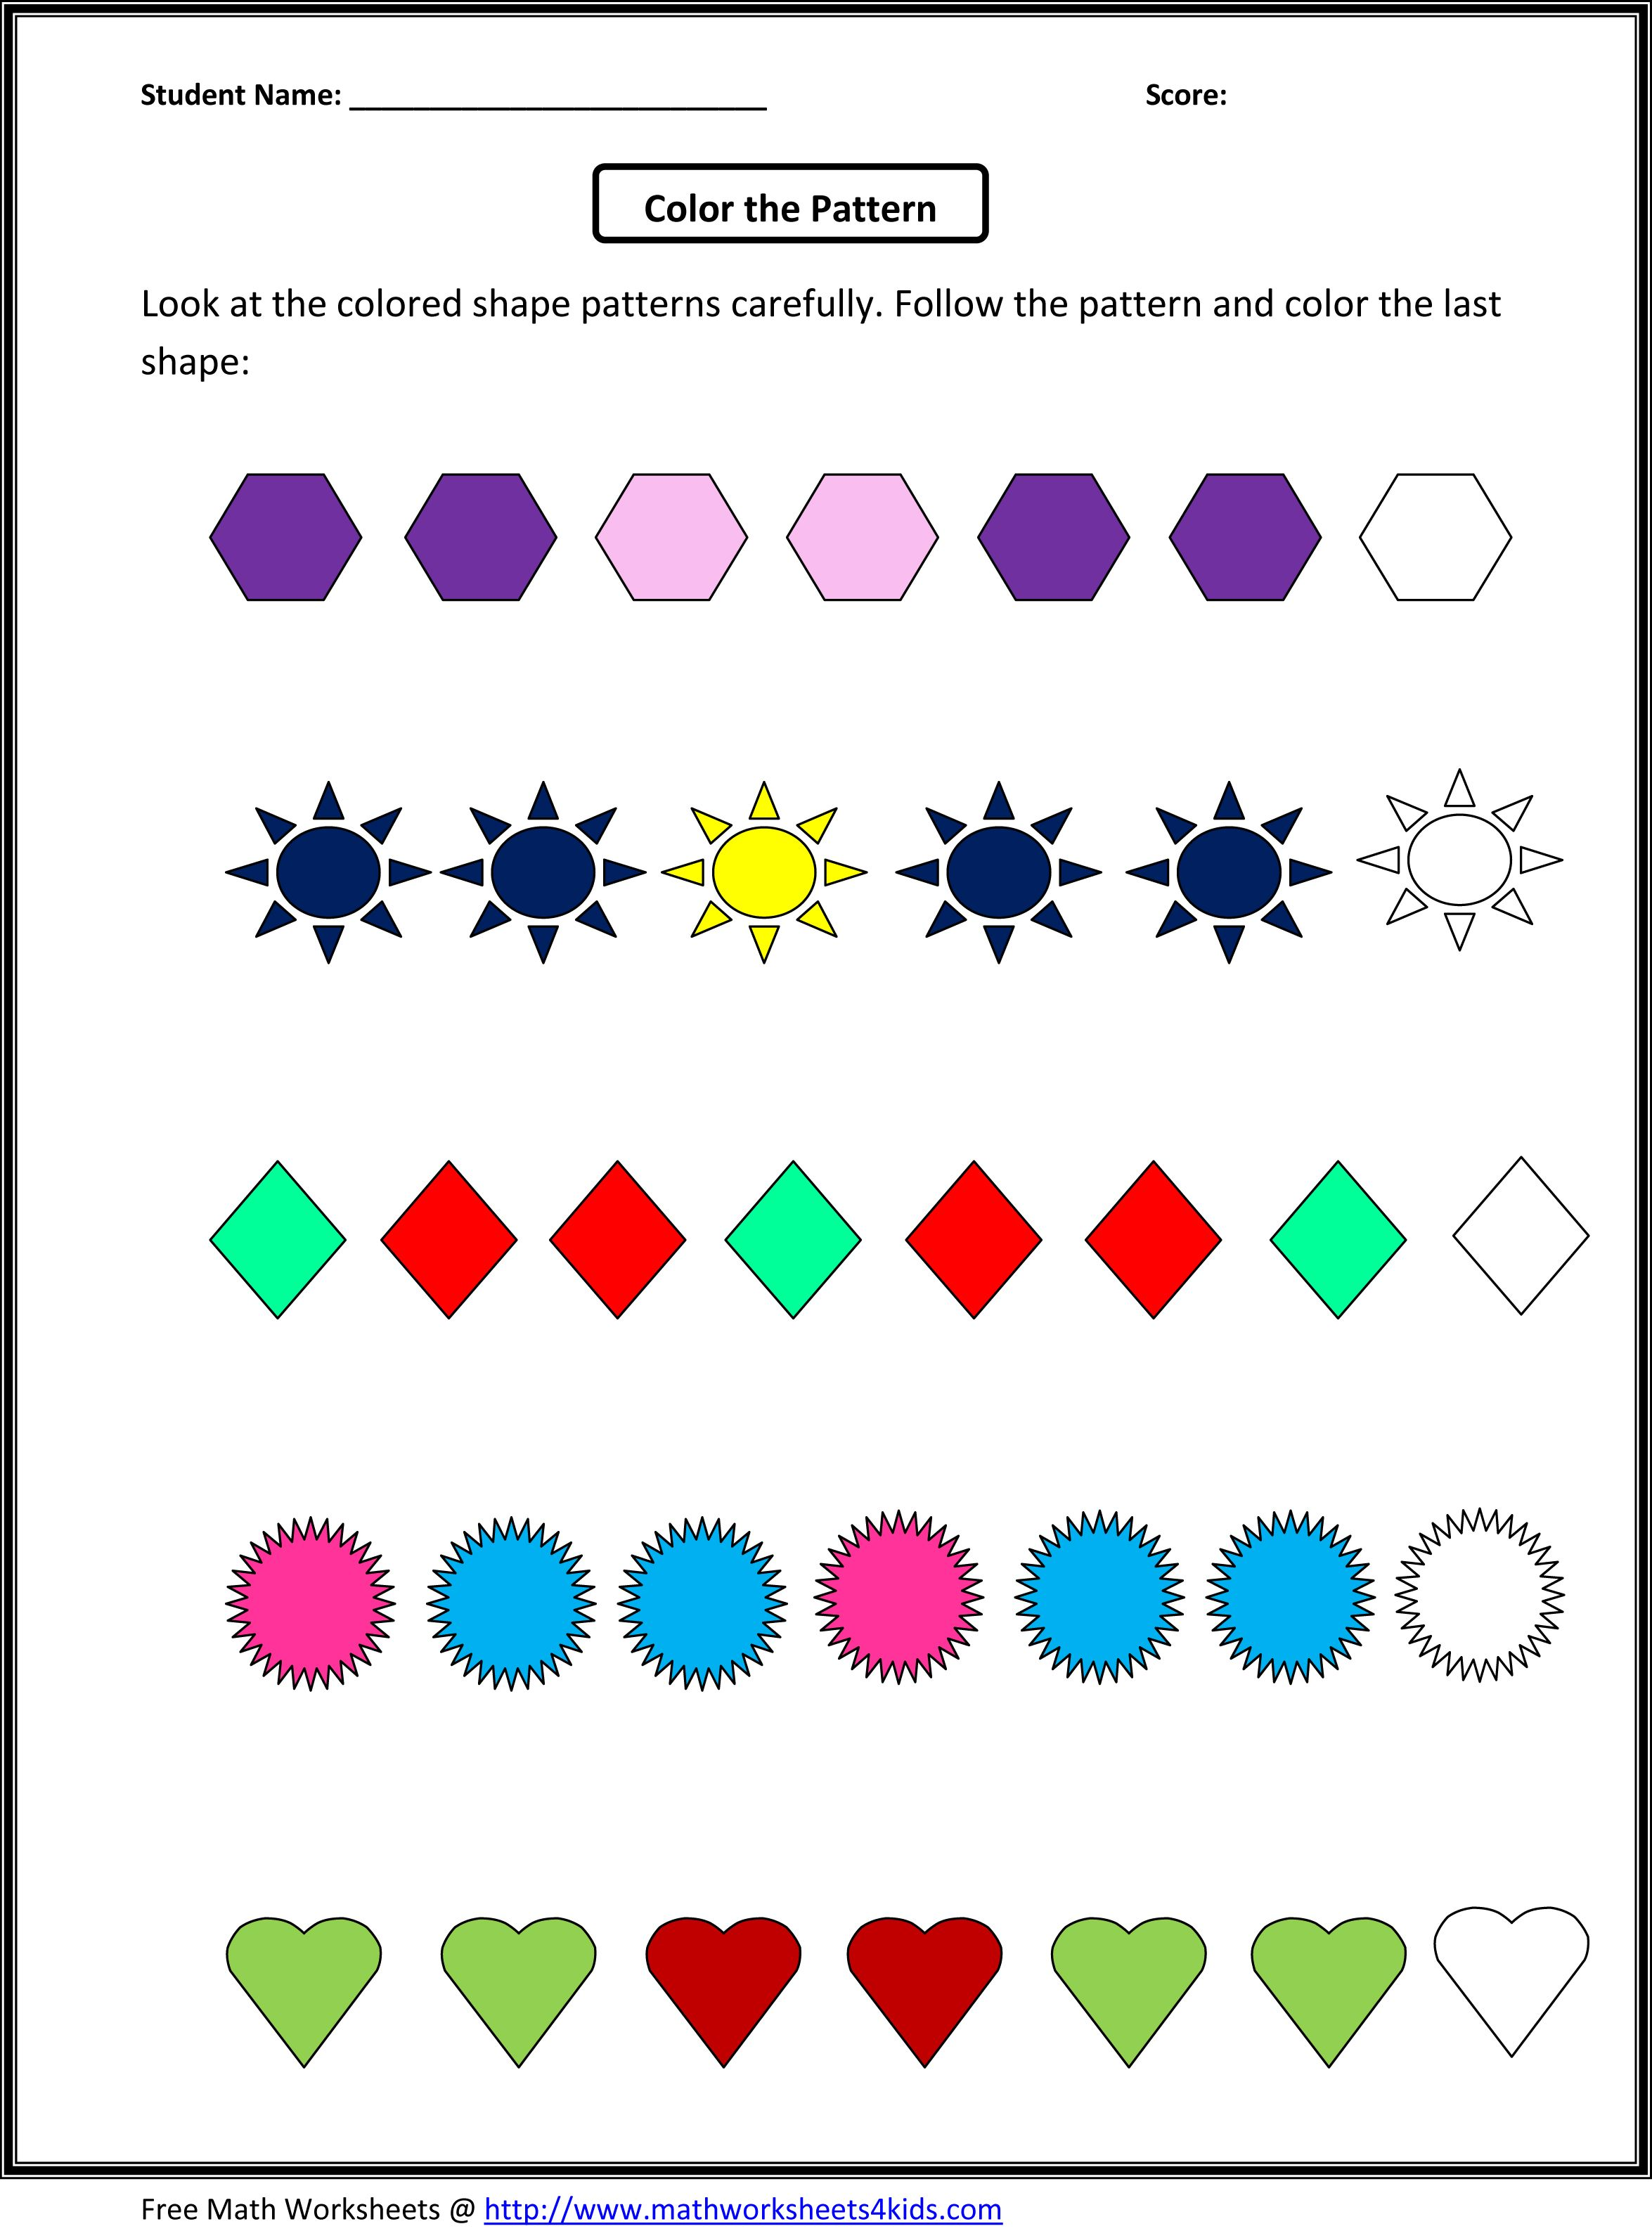 Math Worksheets Scalien – Math Worksheets Patterns and Sequences